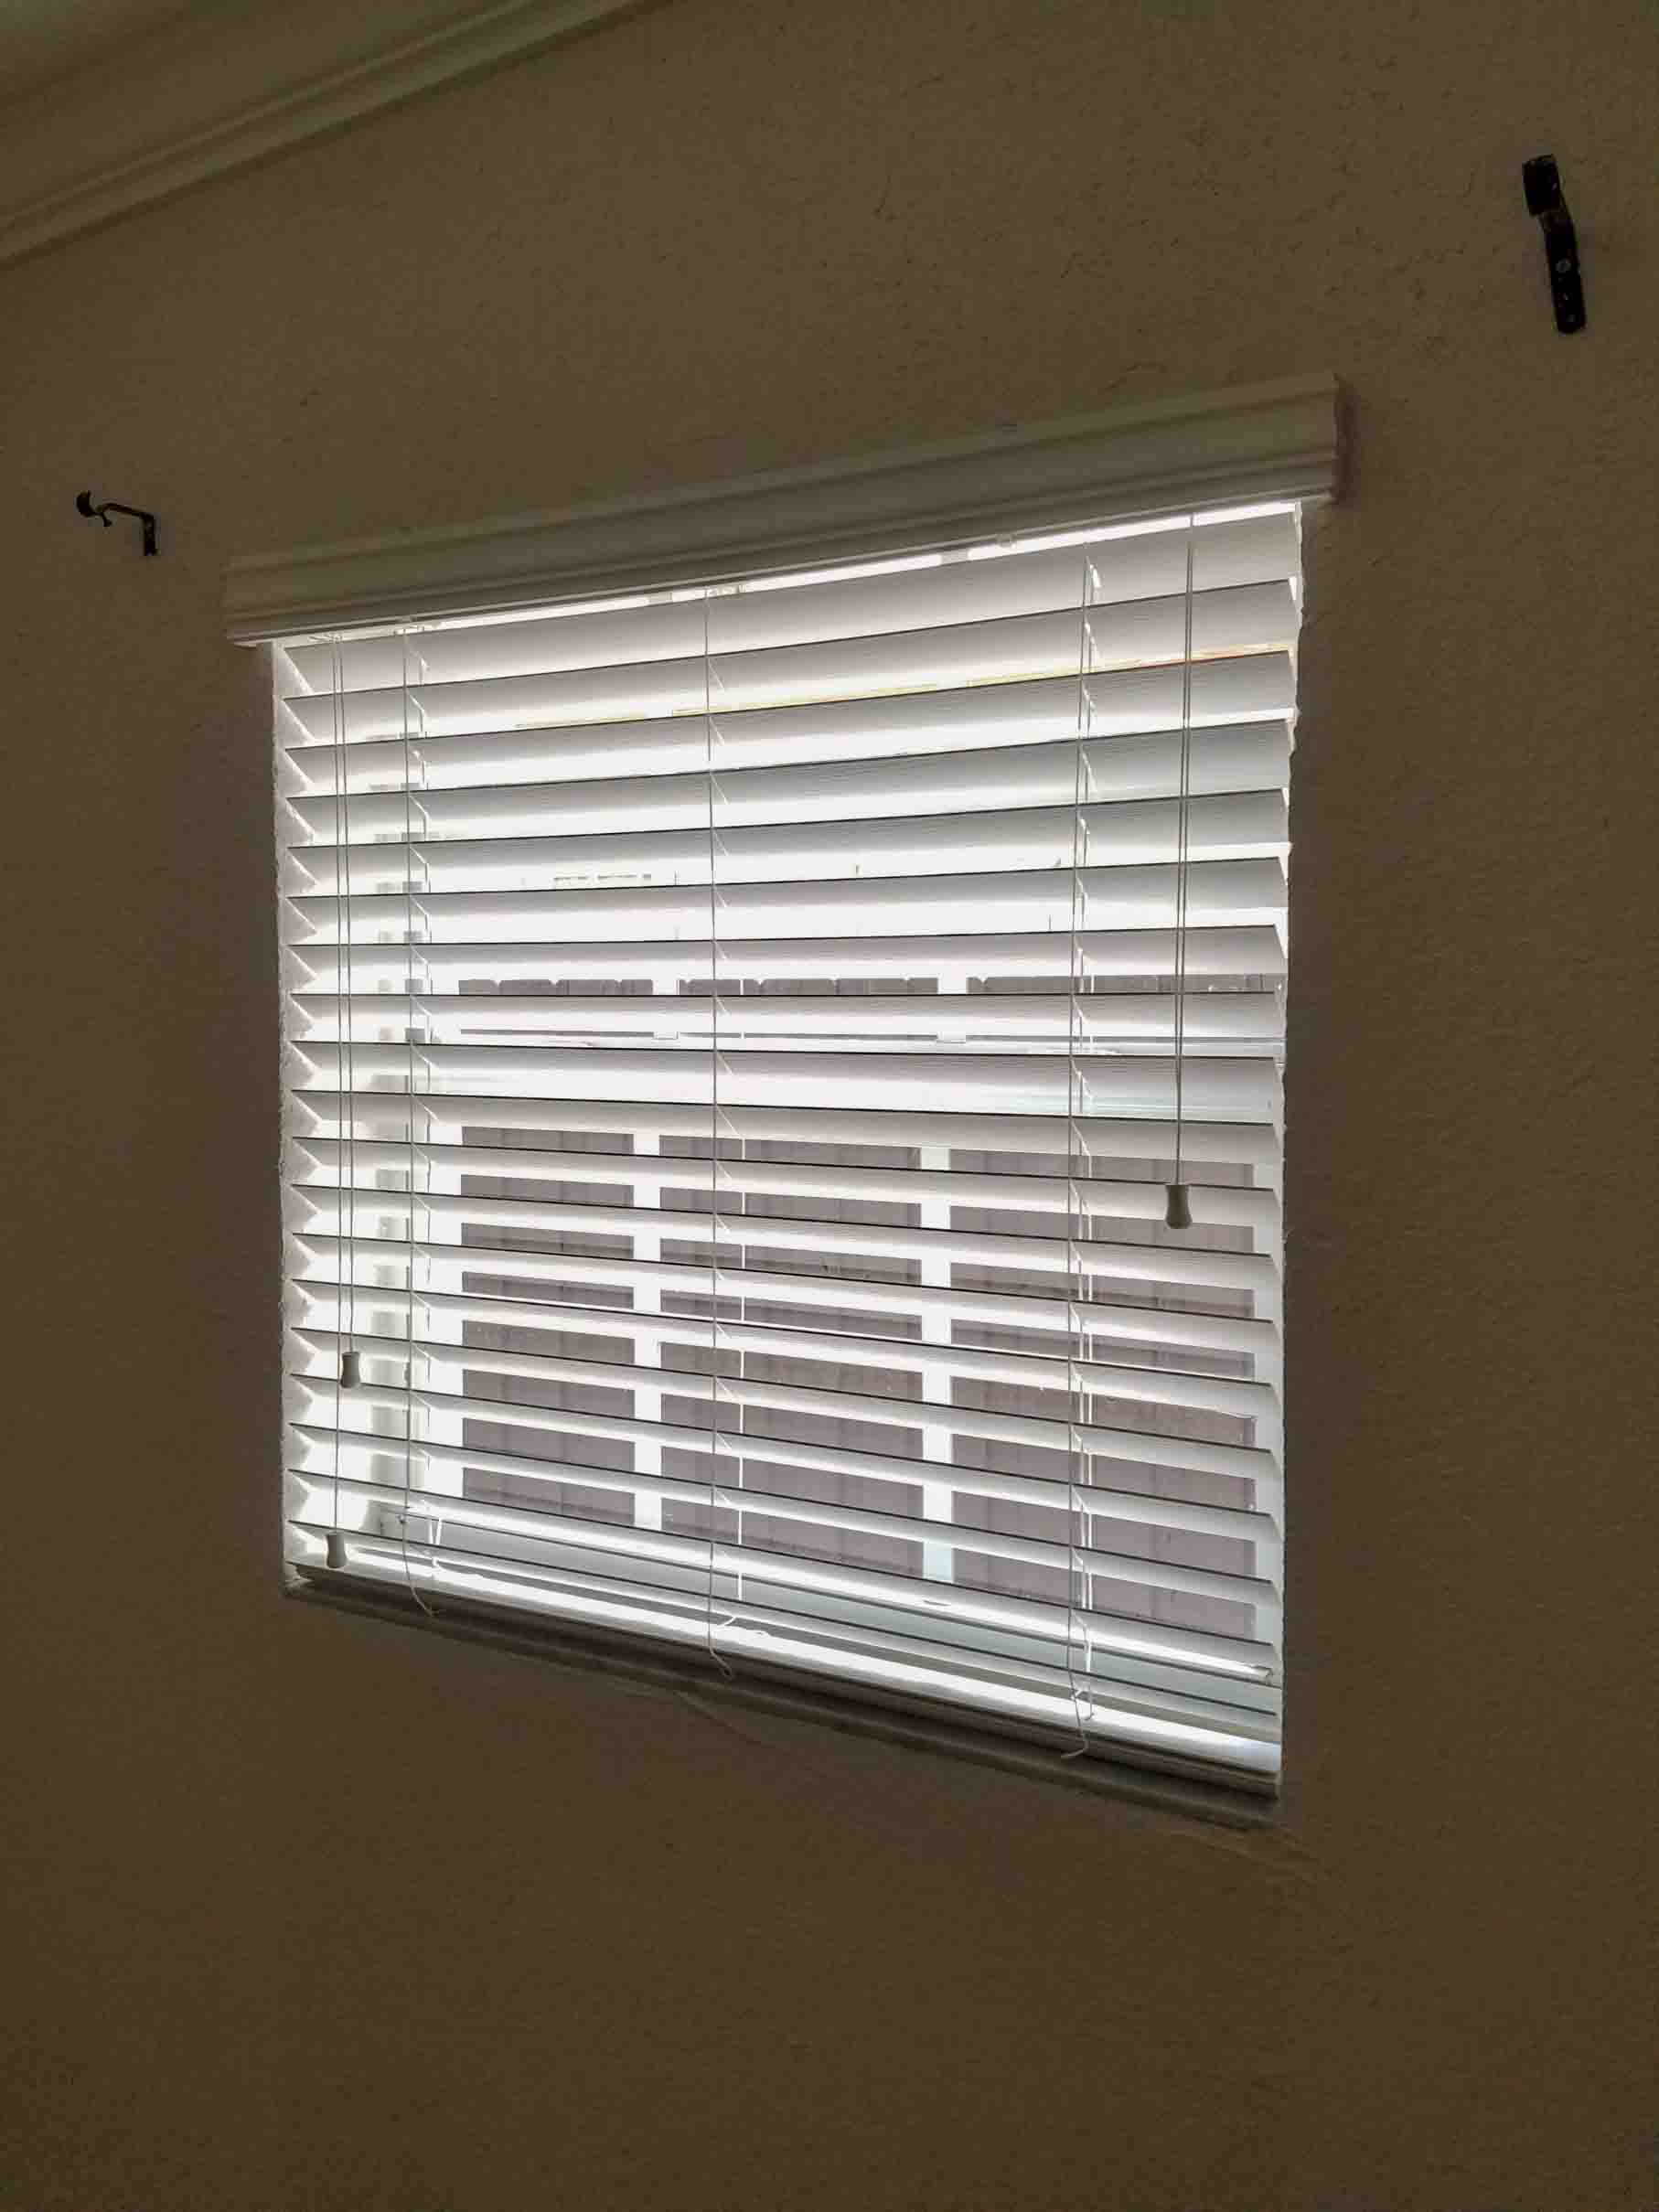 wood blinds gallery WOOD BLINDS GALLERY 20180120 121420